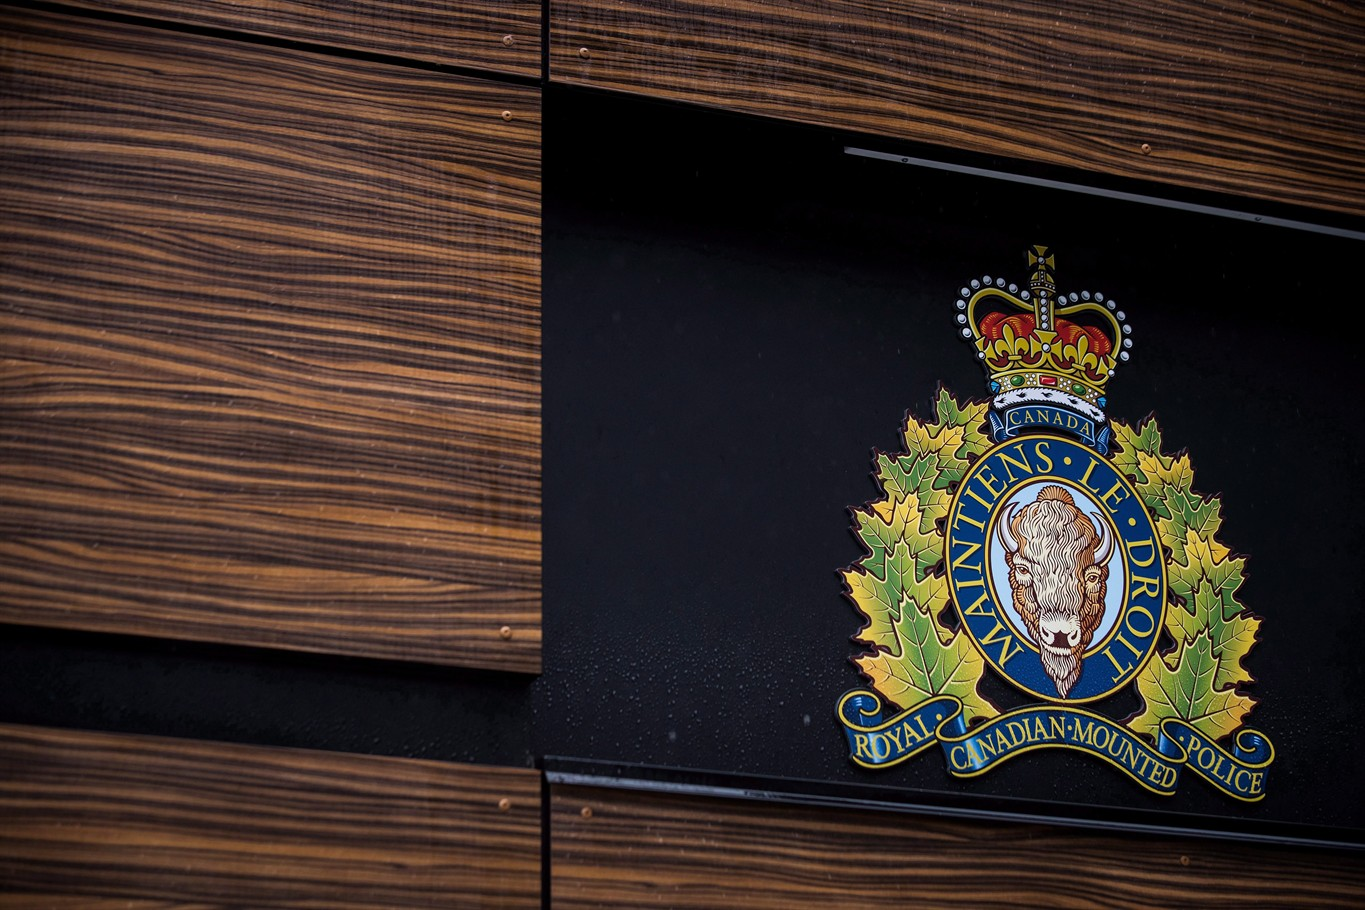 Three Children Dead After Being Hit by Alleged Drunk Driver: Manitoba RCMP